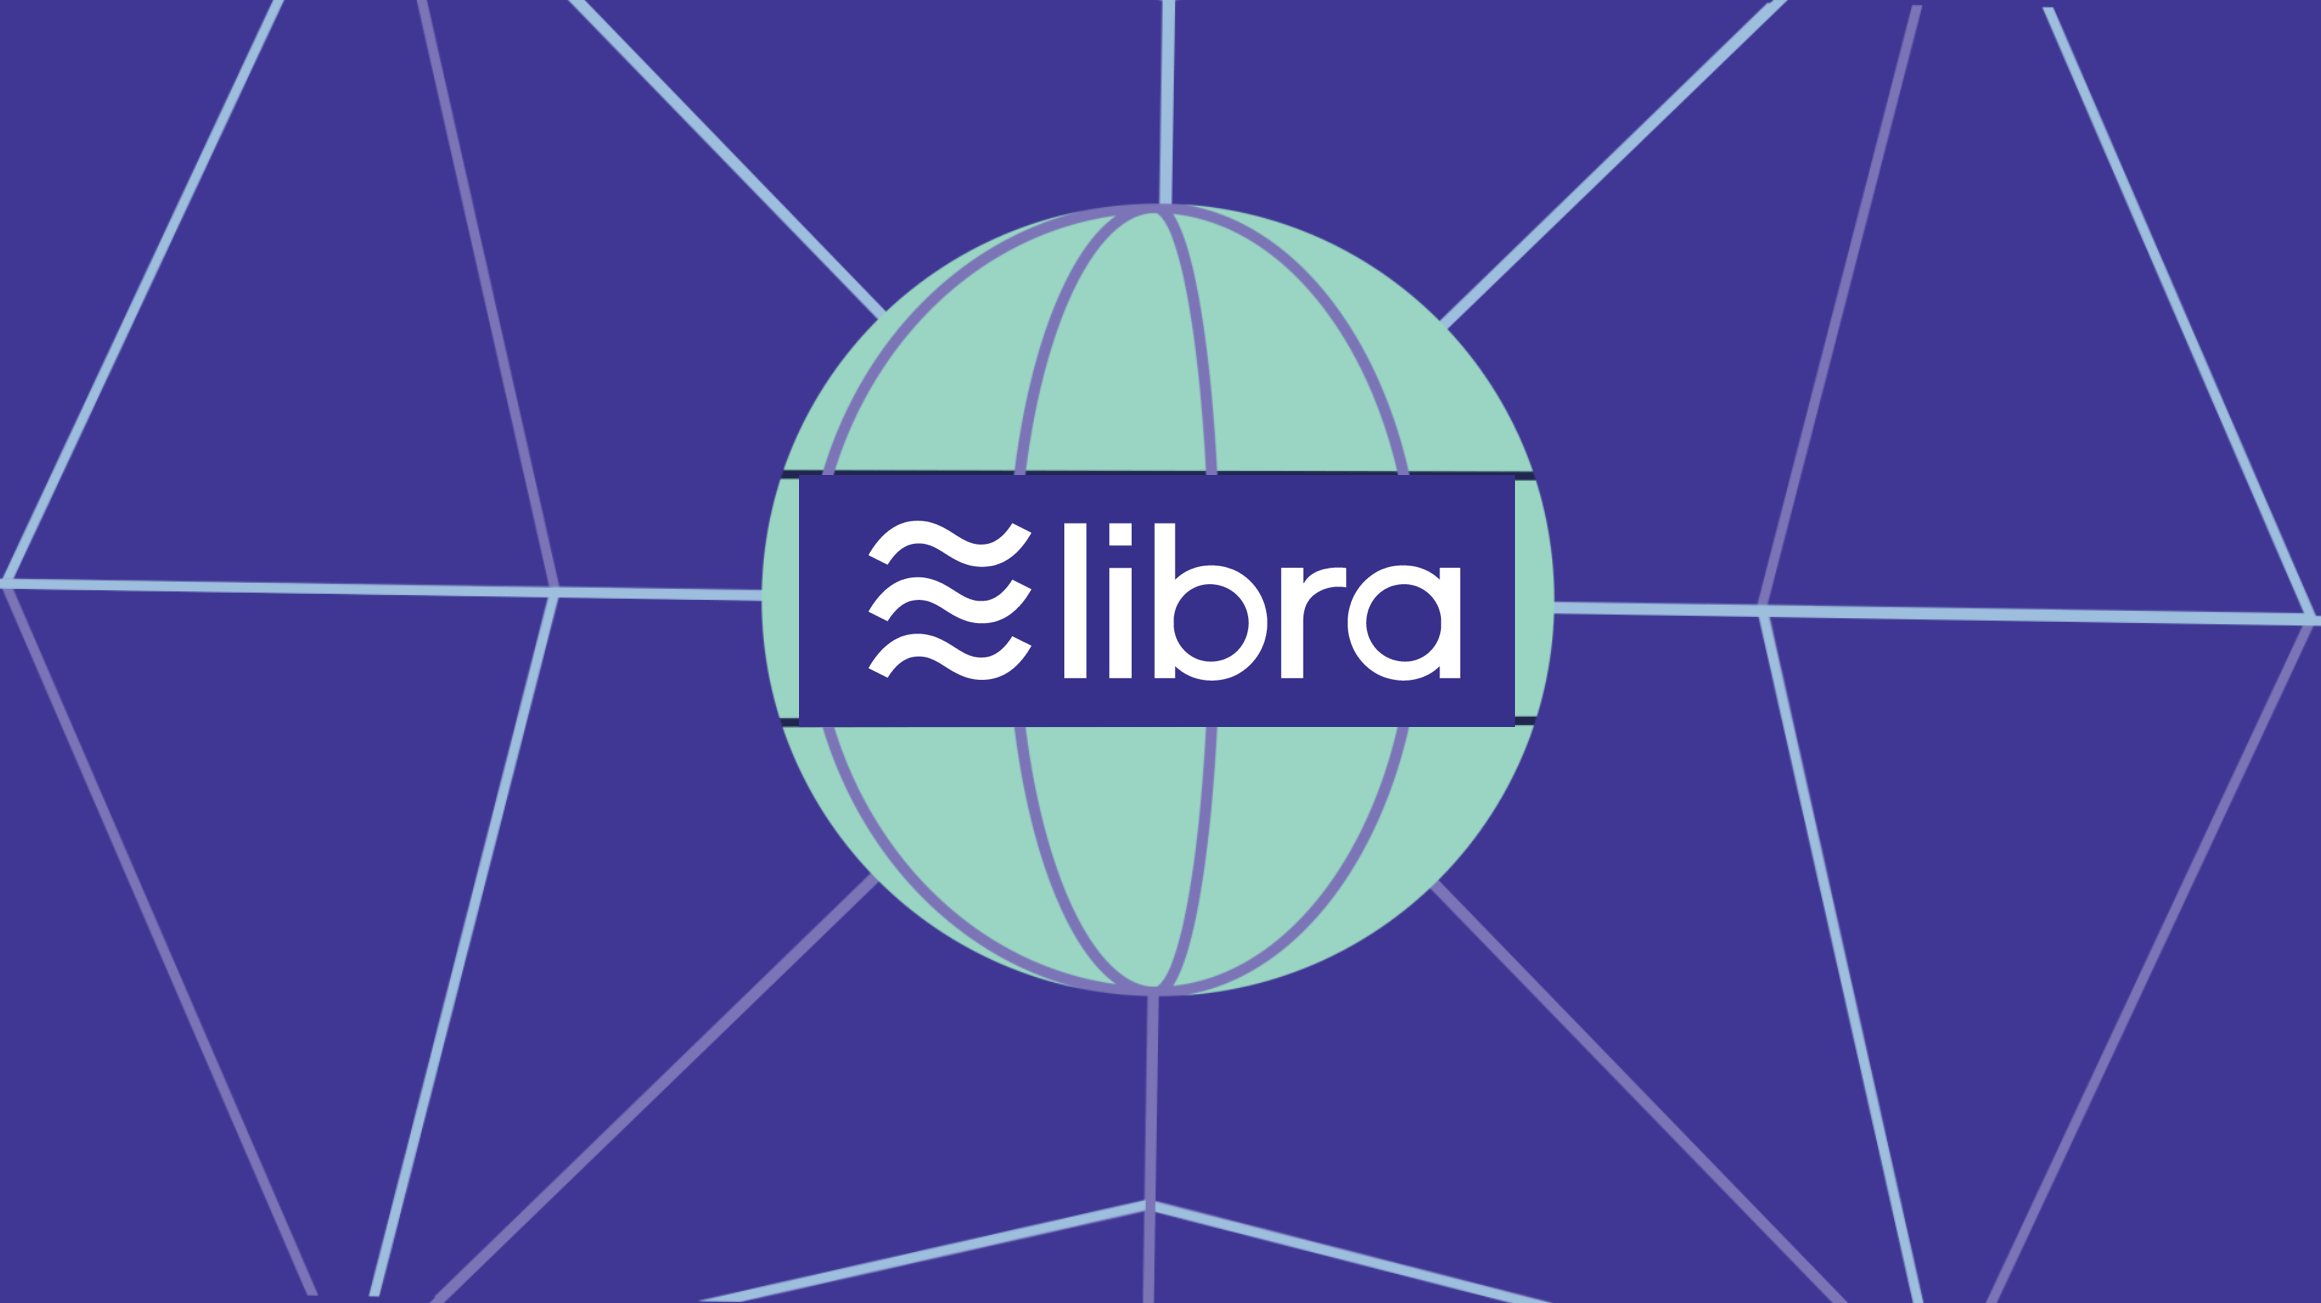 Facebook announces Libra cryptocurrency: All you need to know – TechCrunch